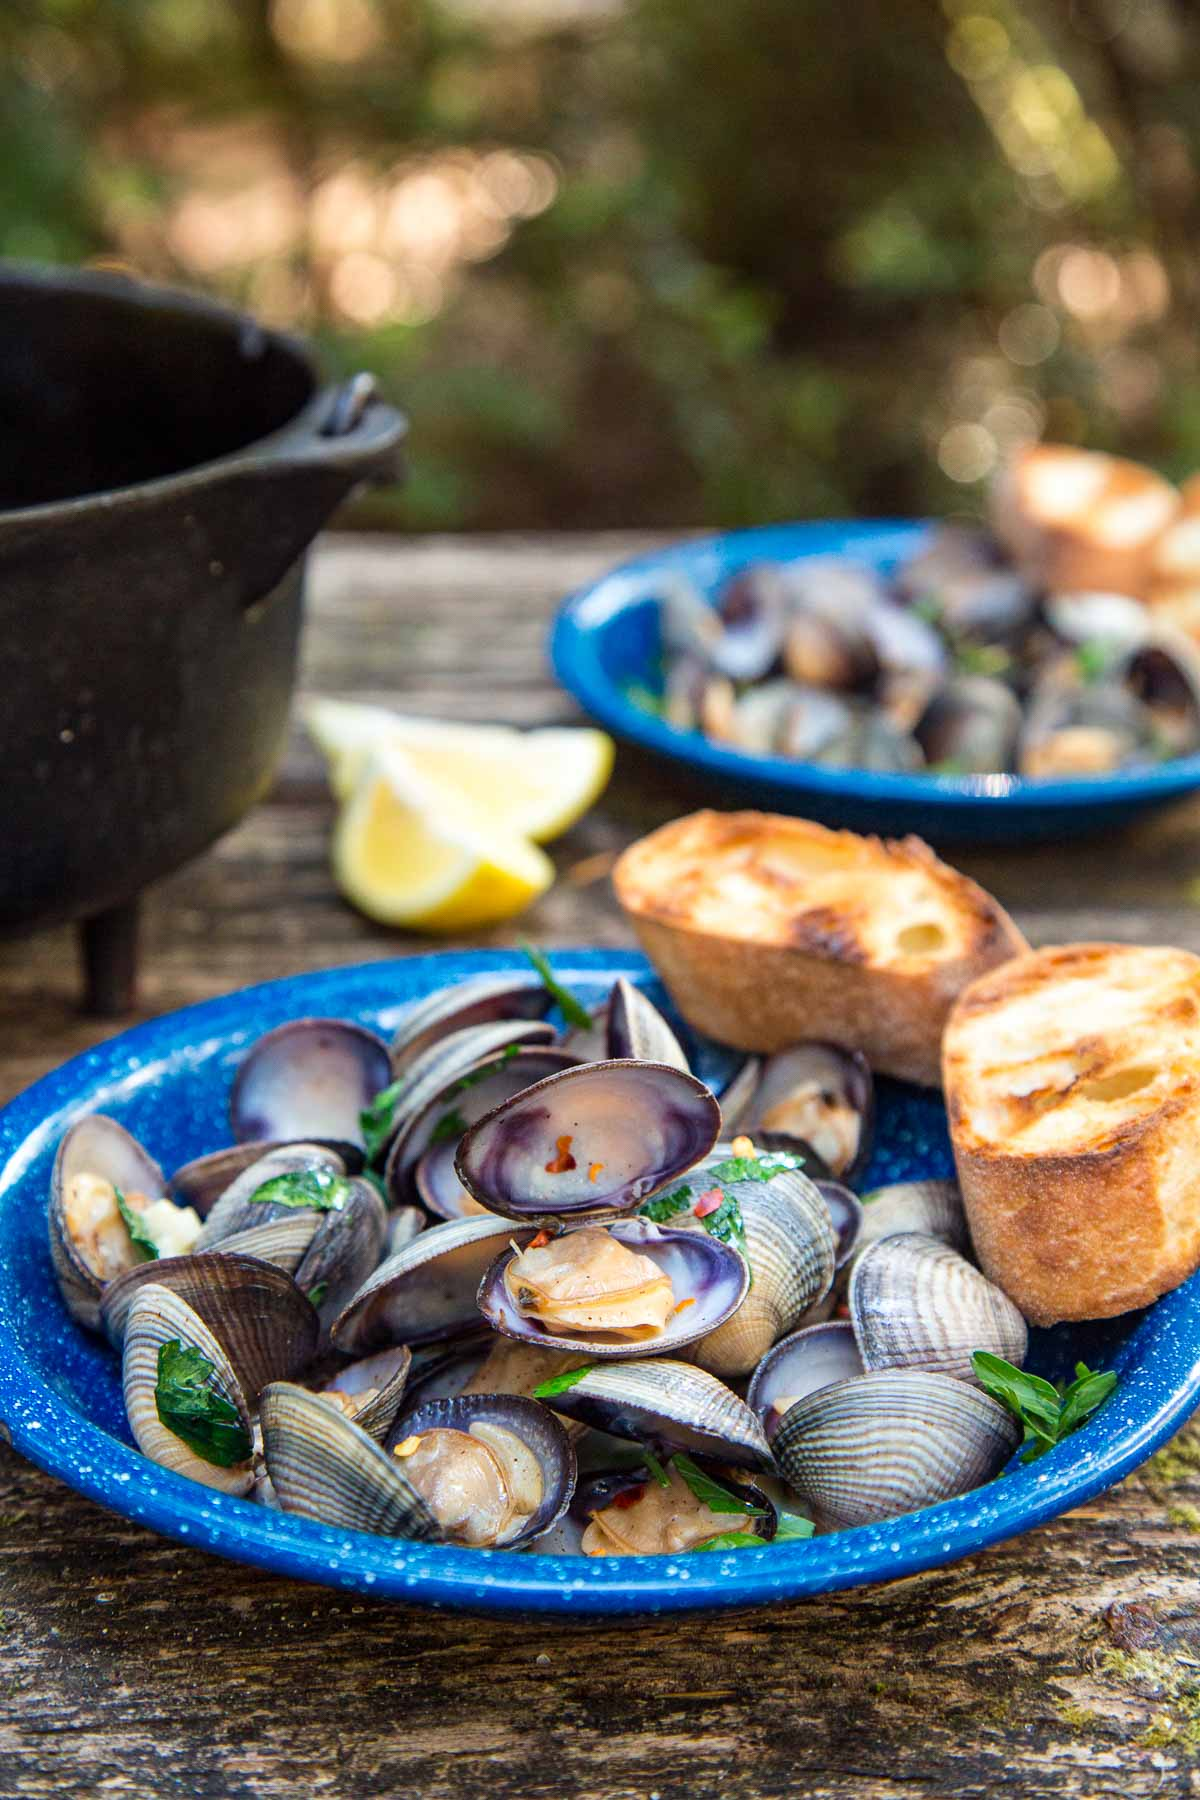 Steamed clams in a blue bowl with grilled bread on the side. A Dutch oven and trees are in the background.